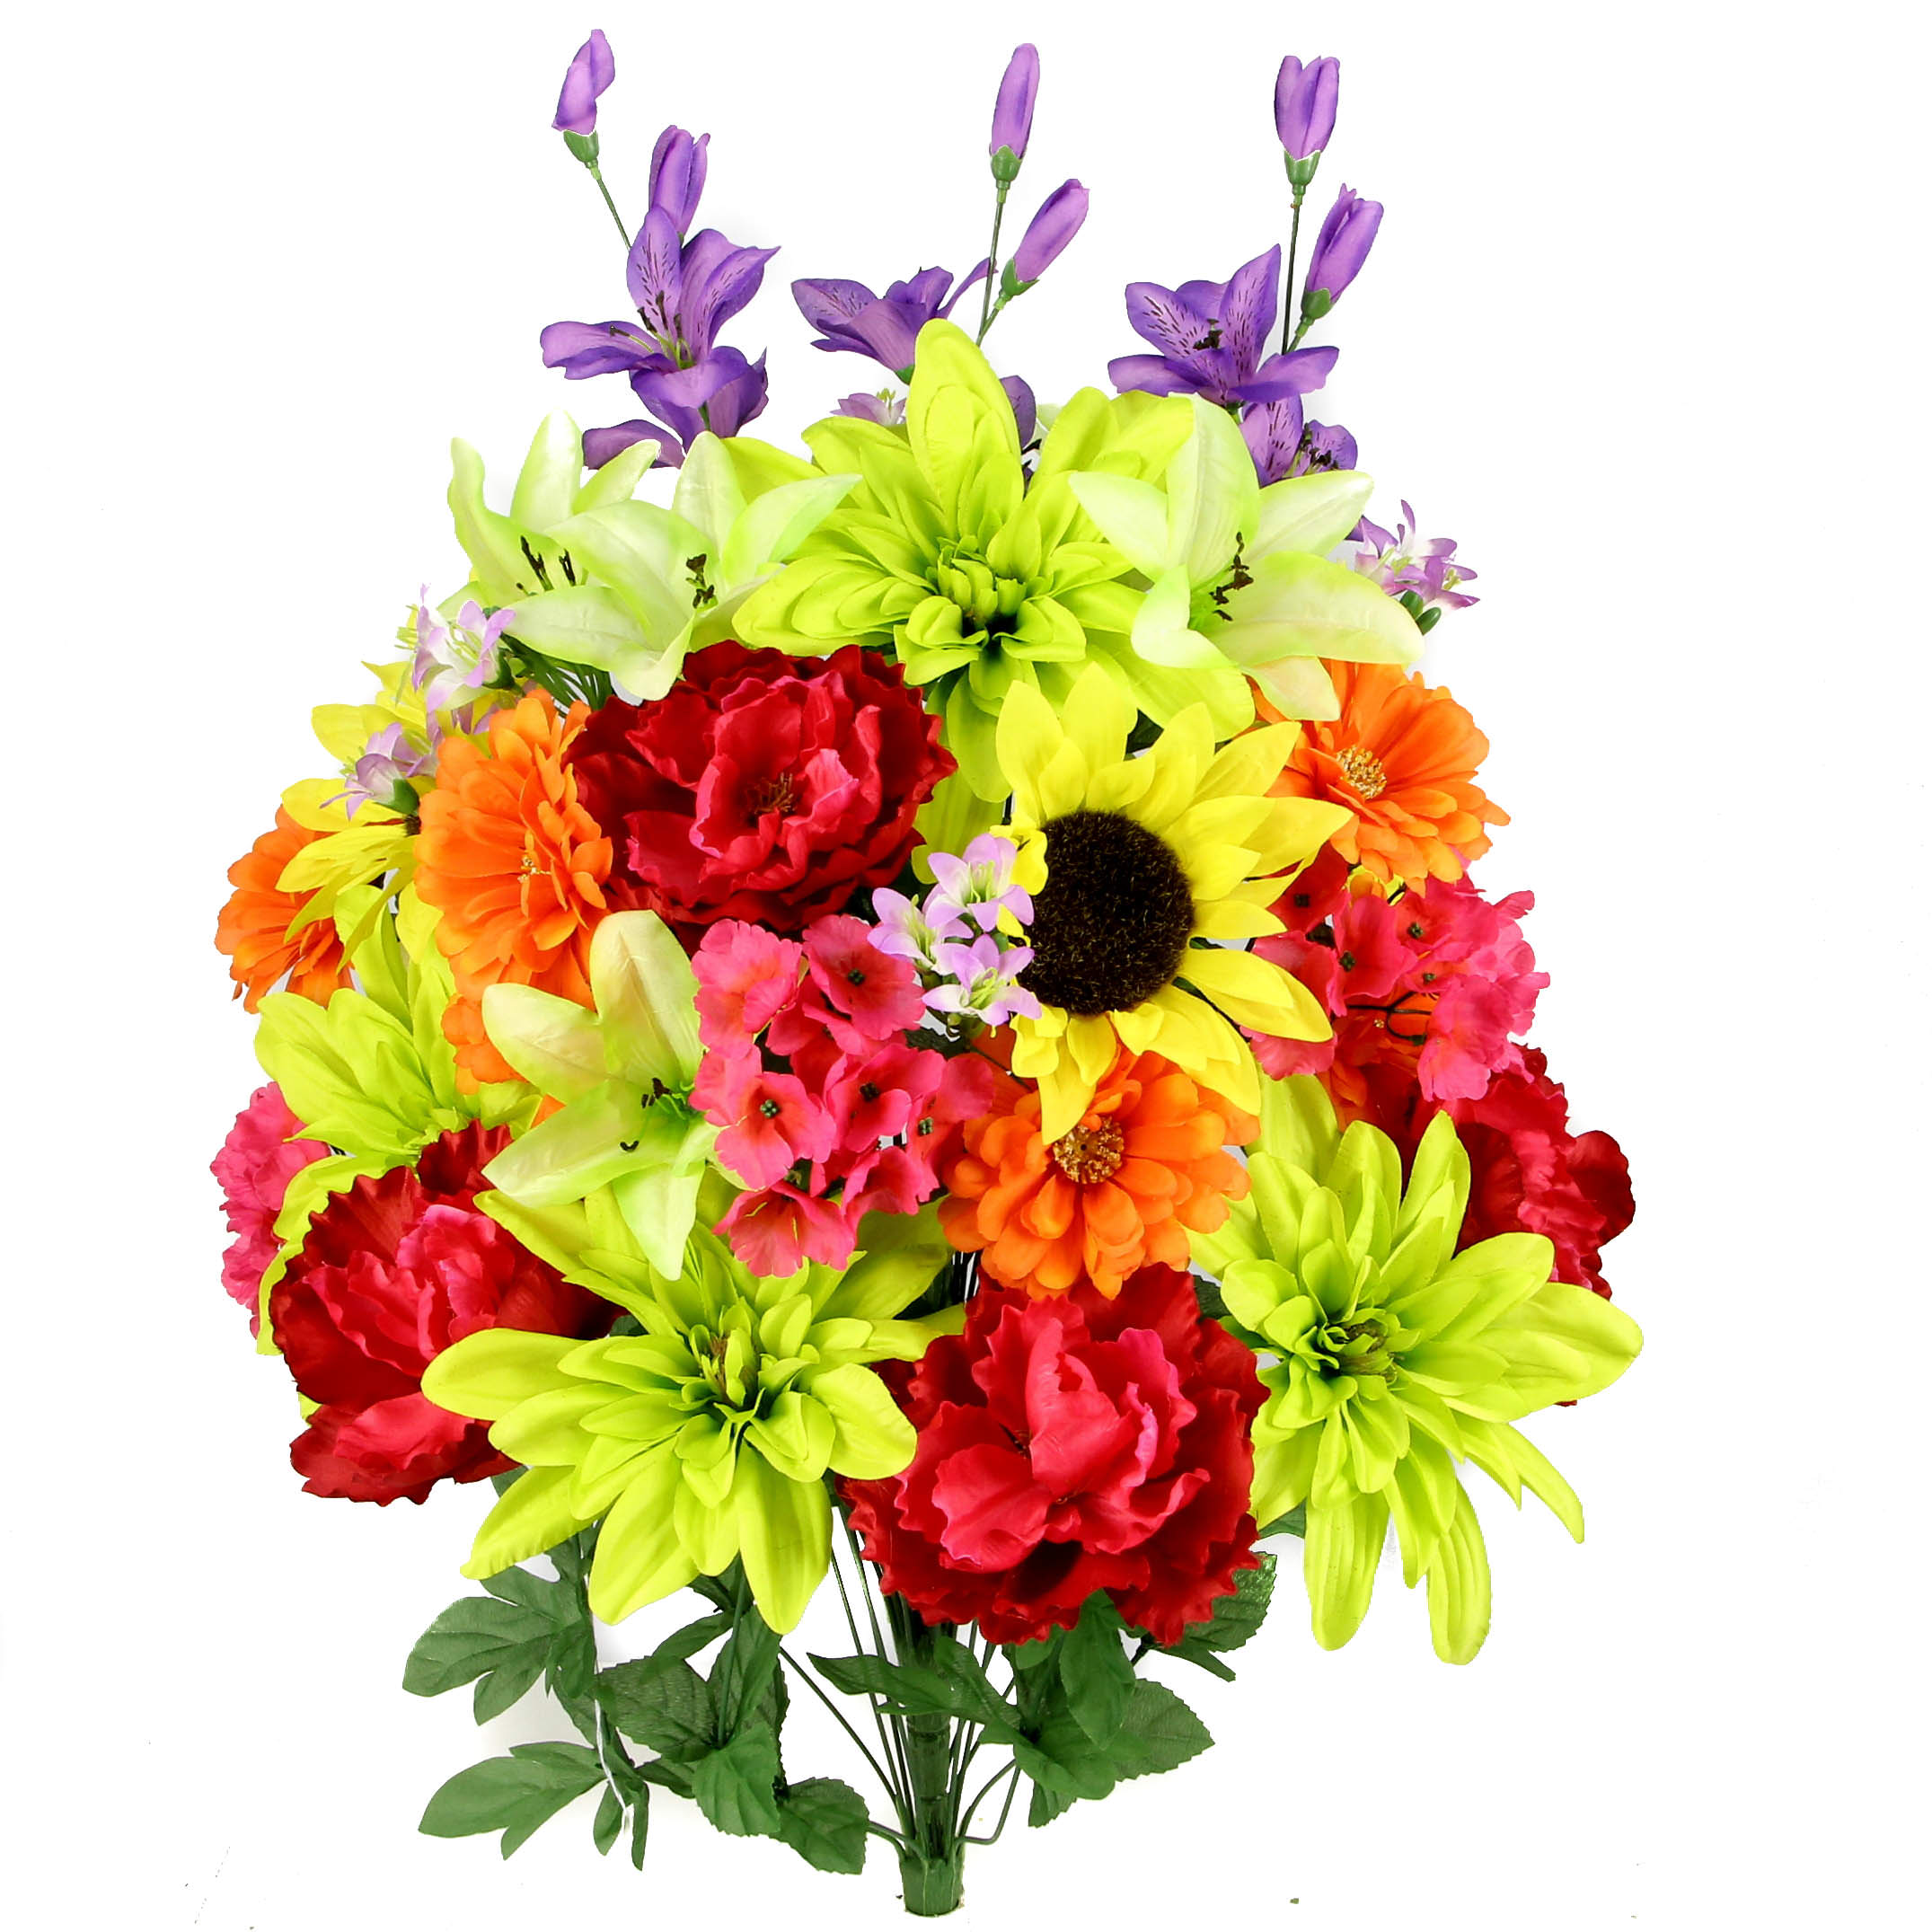 Admired By Nature 36 Stems Artificial New Dahlia, Sunflower, Peony, Hydrangea Mixed Flower Bush with Greenery, Country